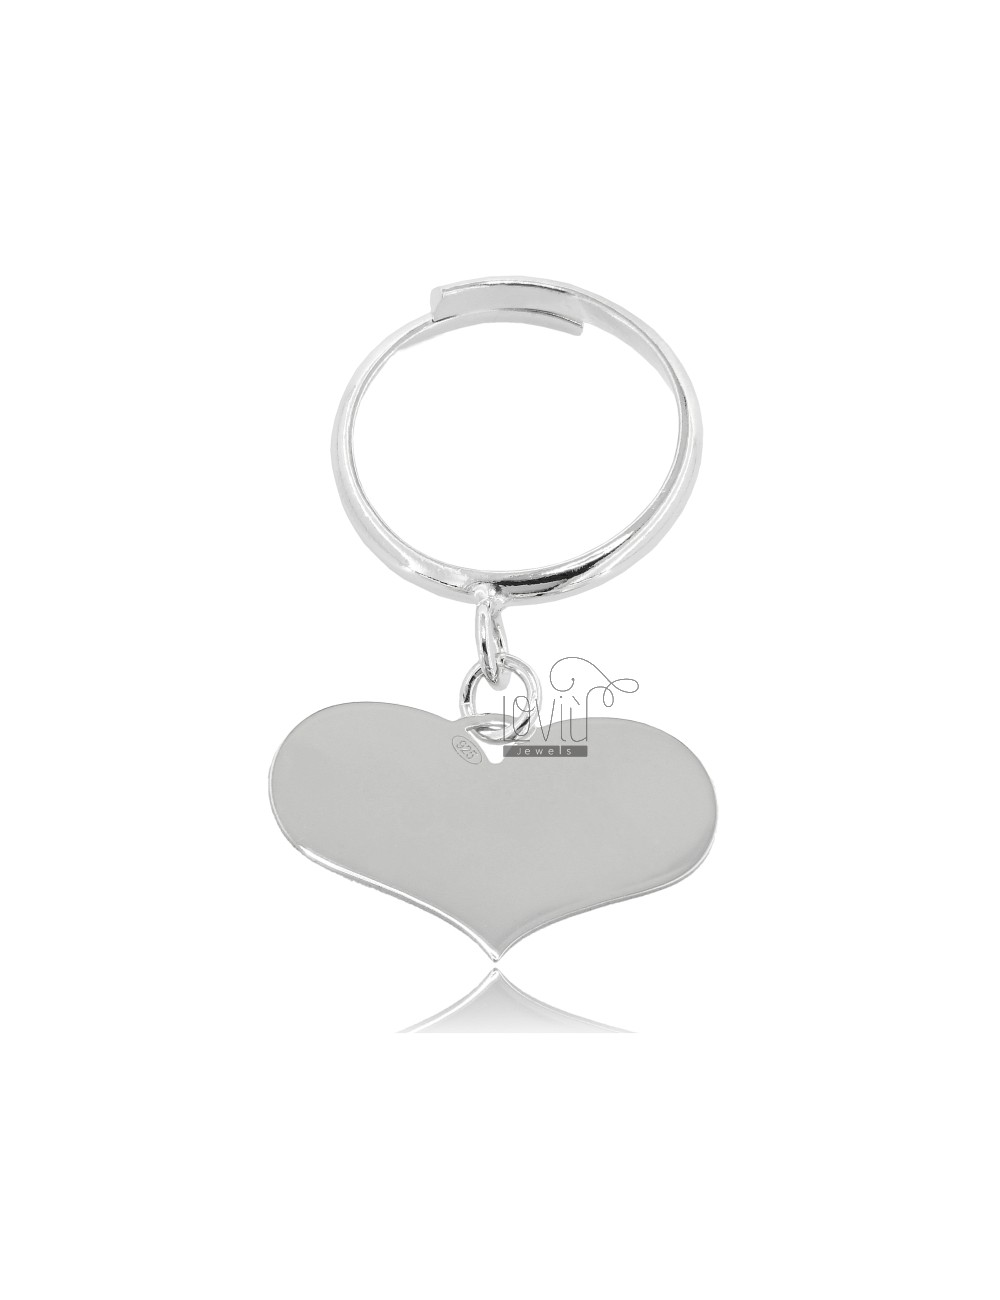 RING HEART PENDANT WITH ADJUSTABLE BASE IN SILVER RHODIUM 925